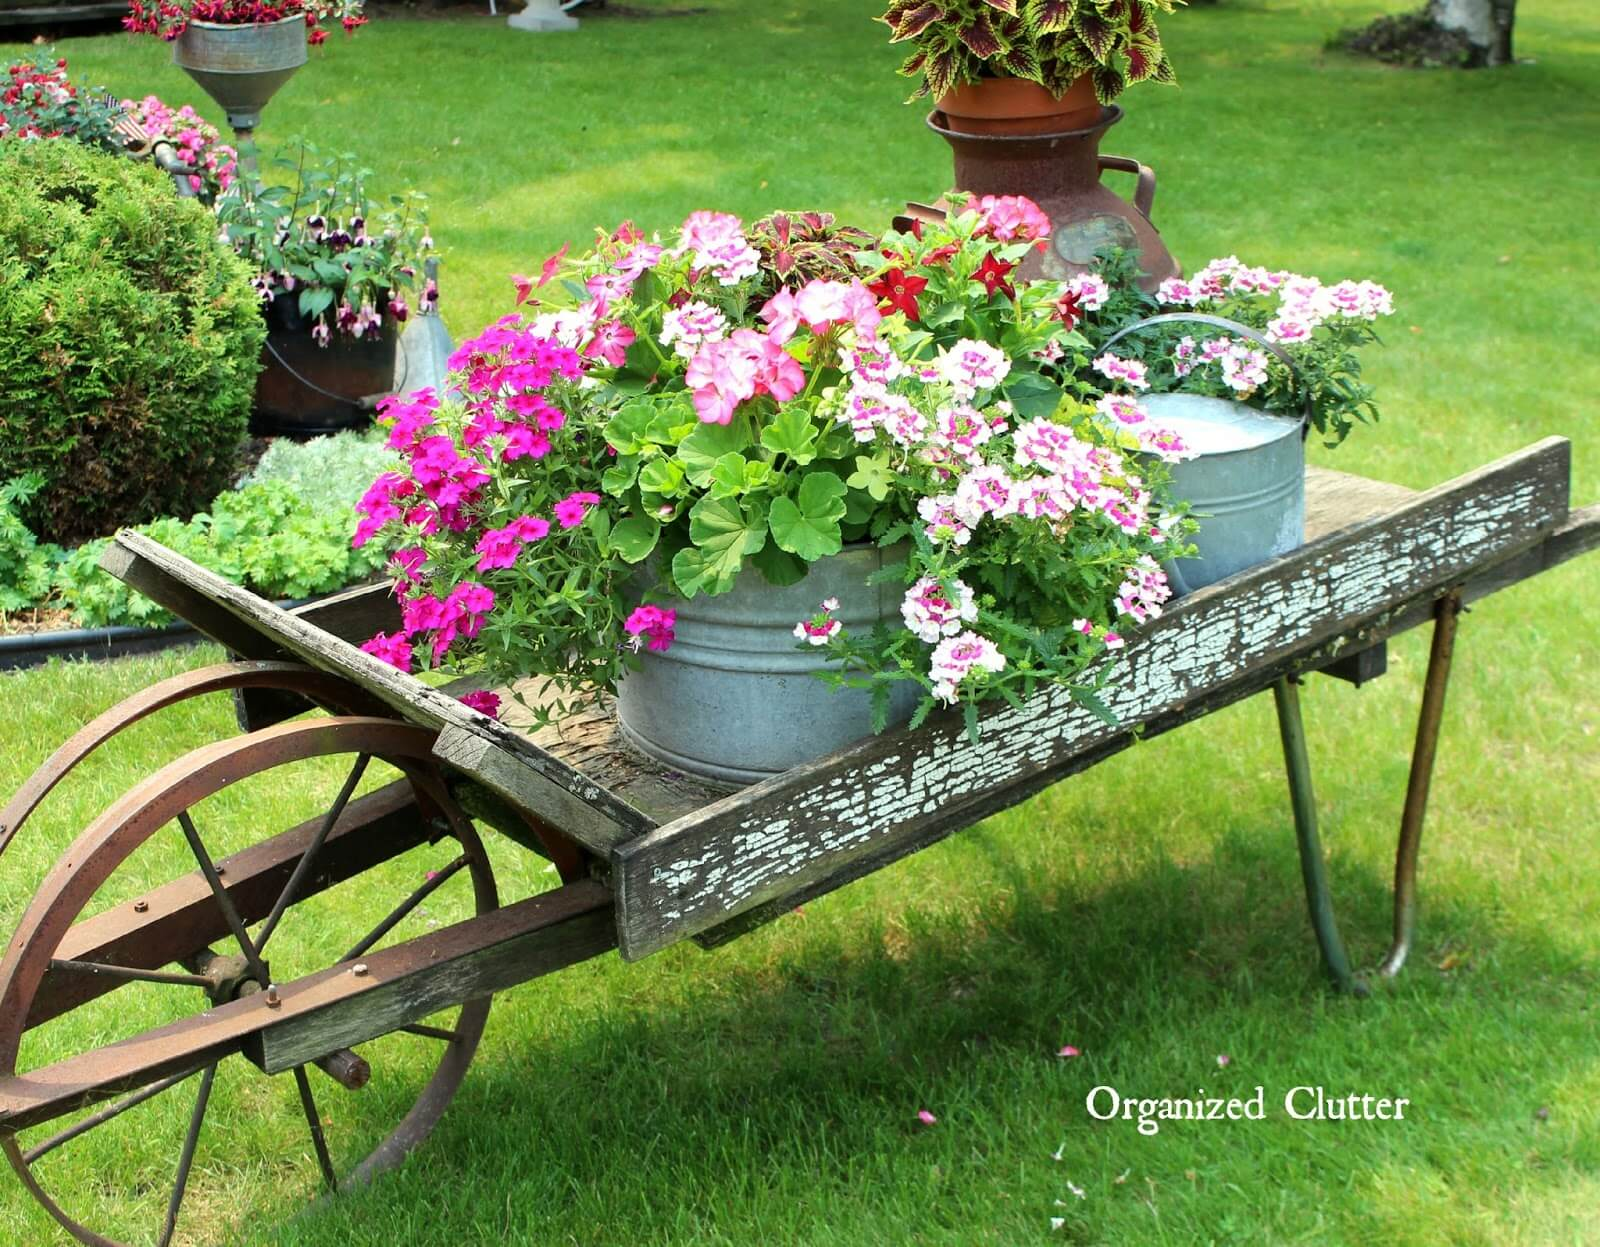 Wheelbarrow Vintage Garden Flower Display